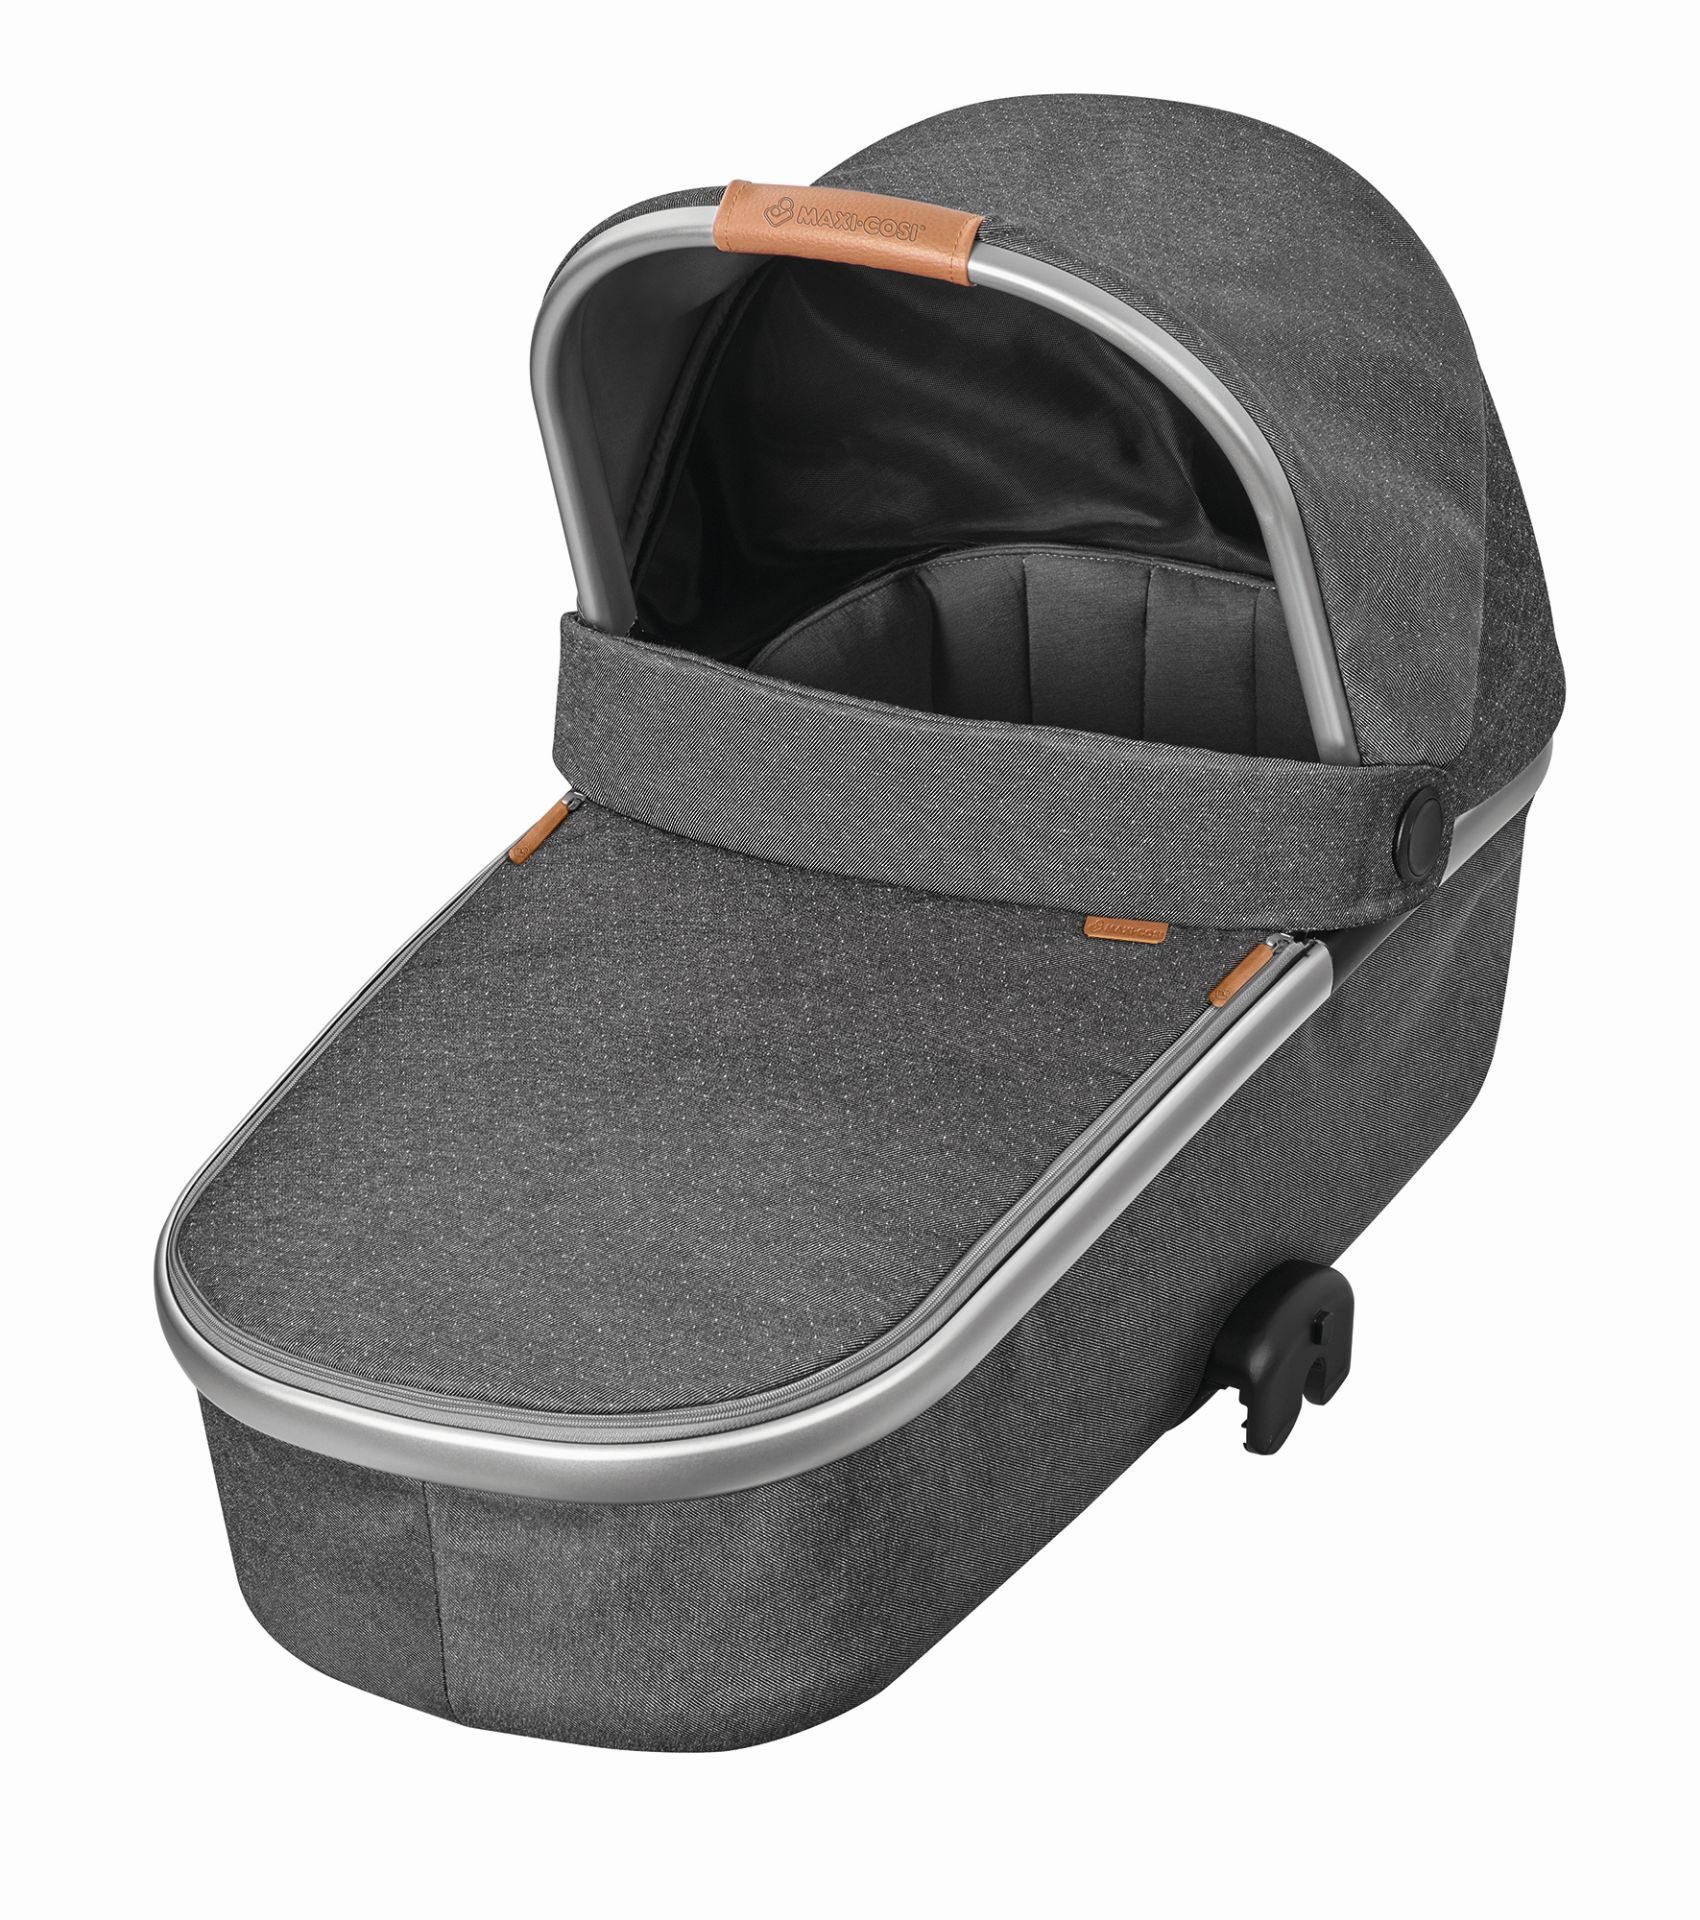 maxi cosi carrycot oria 2018 sparkling grey buy at kidsroom strollers. Black Bedroom Furniture Sets. Home Design Ideas